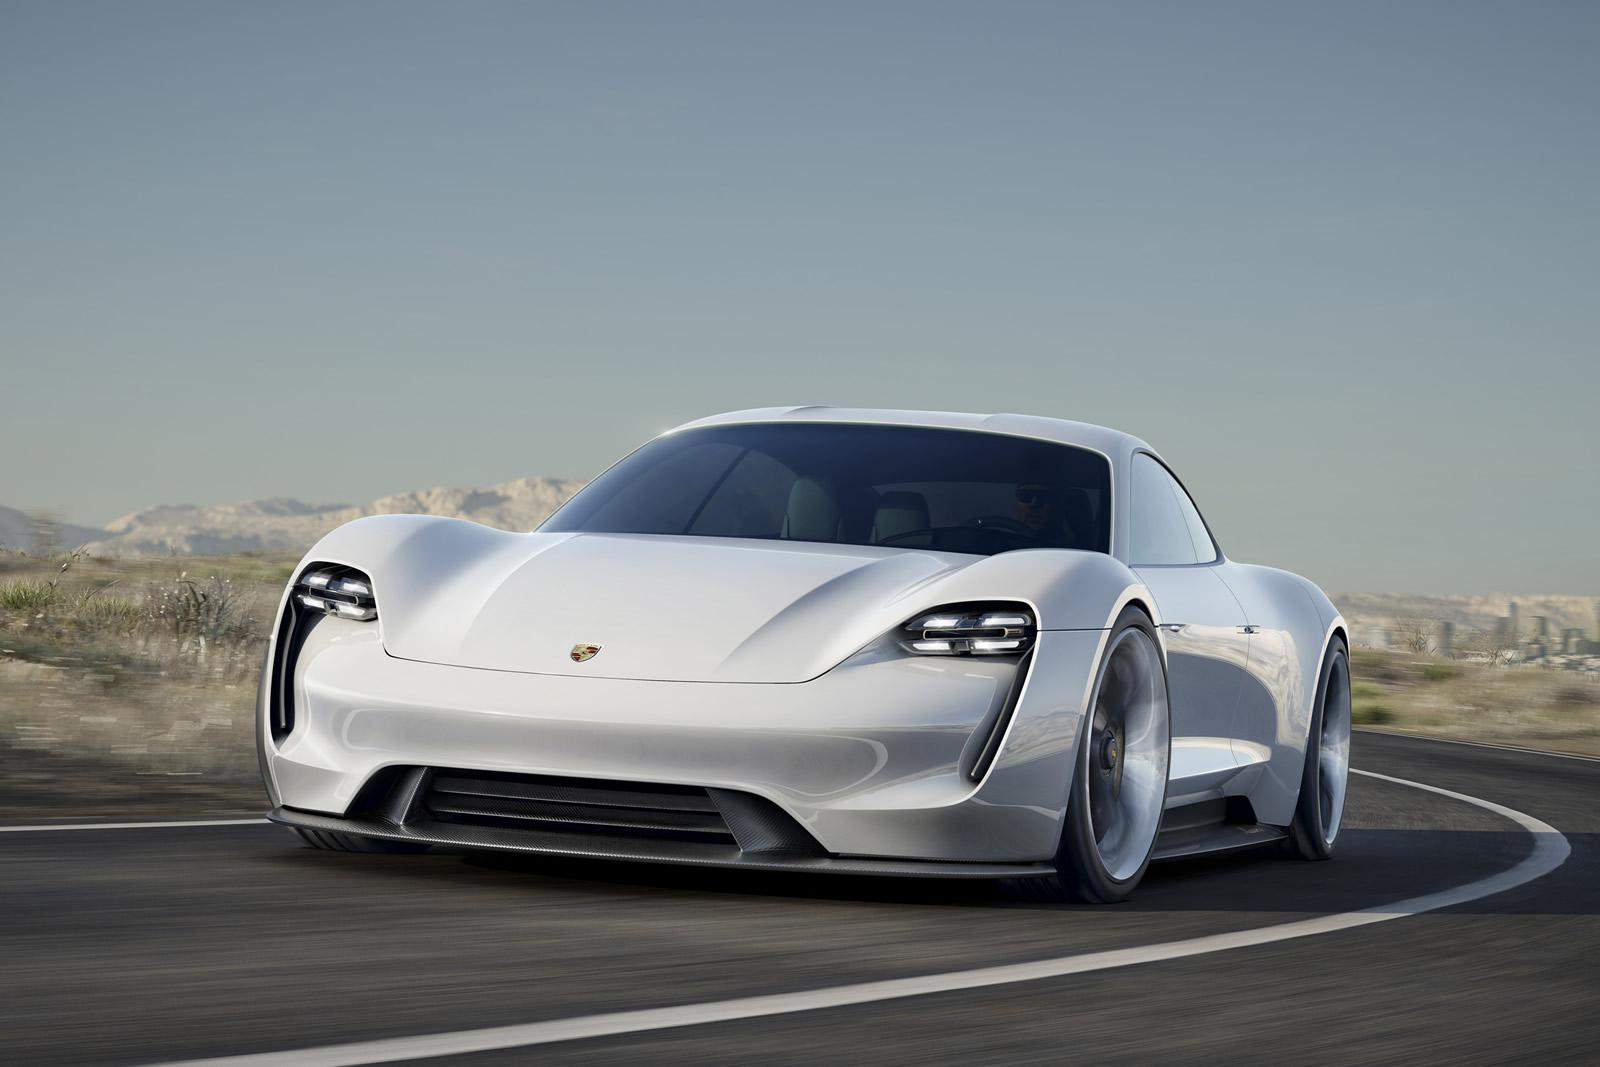 Porsche Taycan is the production version of the Mission E